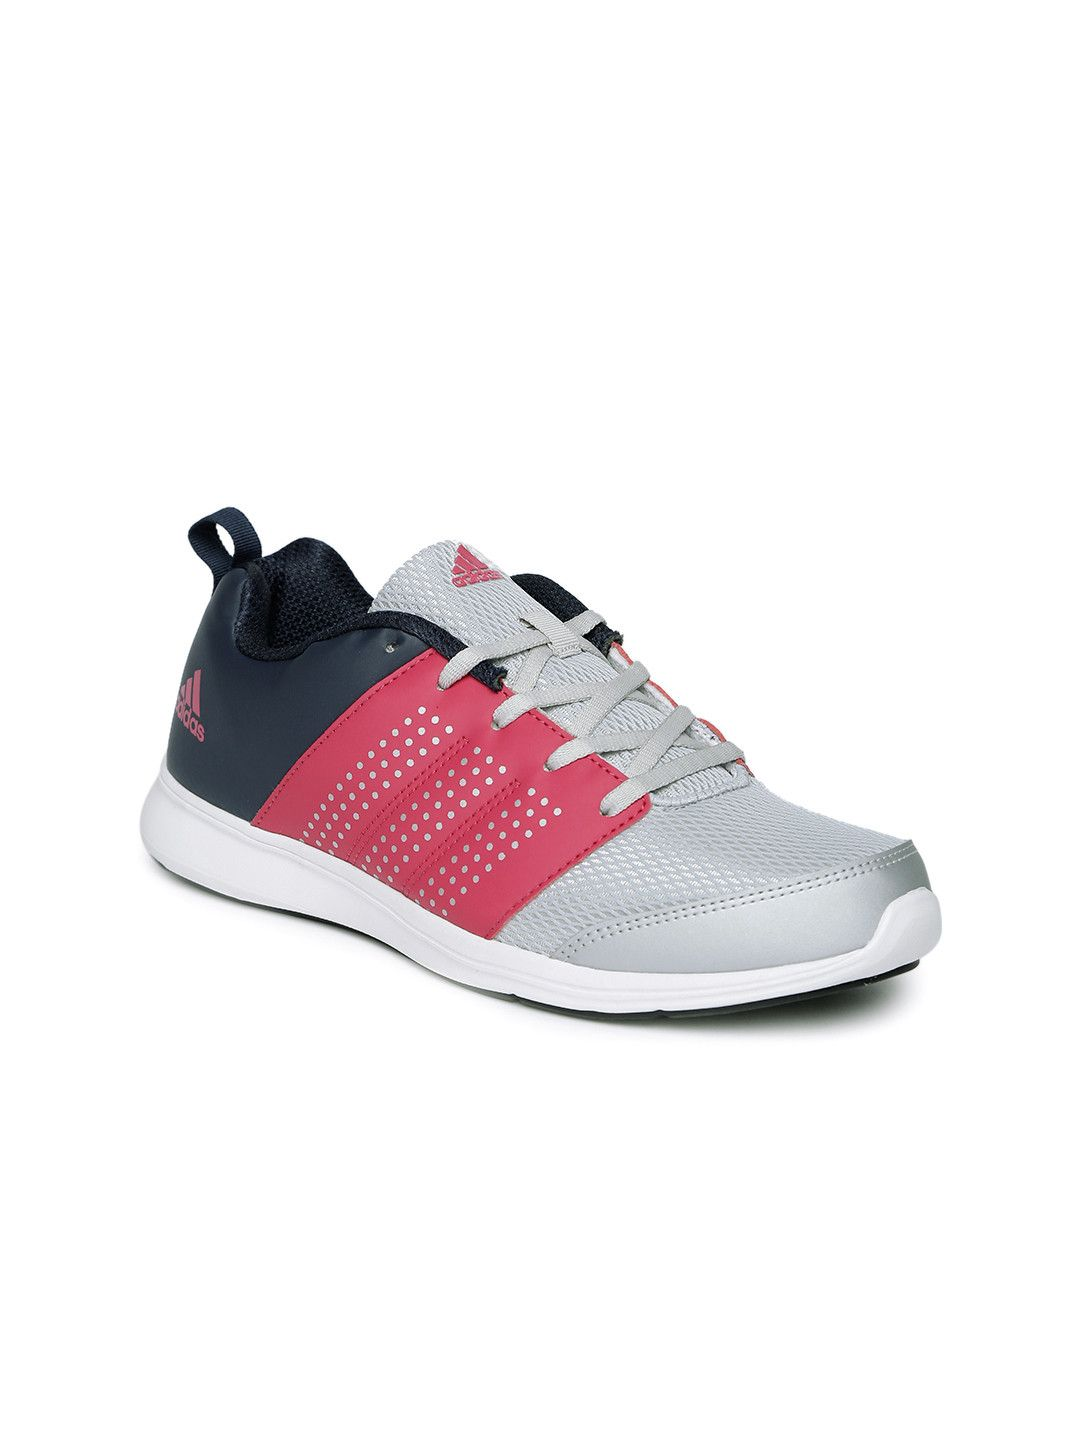 f306a3dbfcf5c Shoes  adidas pastel sneakers blue sneakers grey sneakers petrol dusty pink  pink sneakers adidas